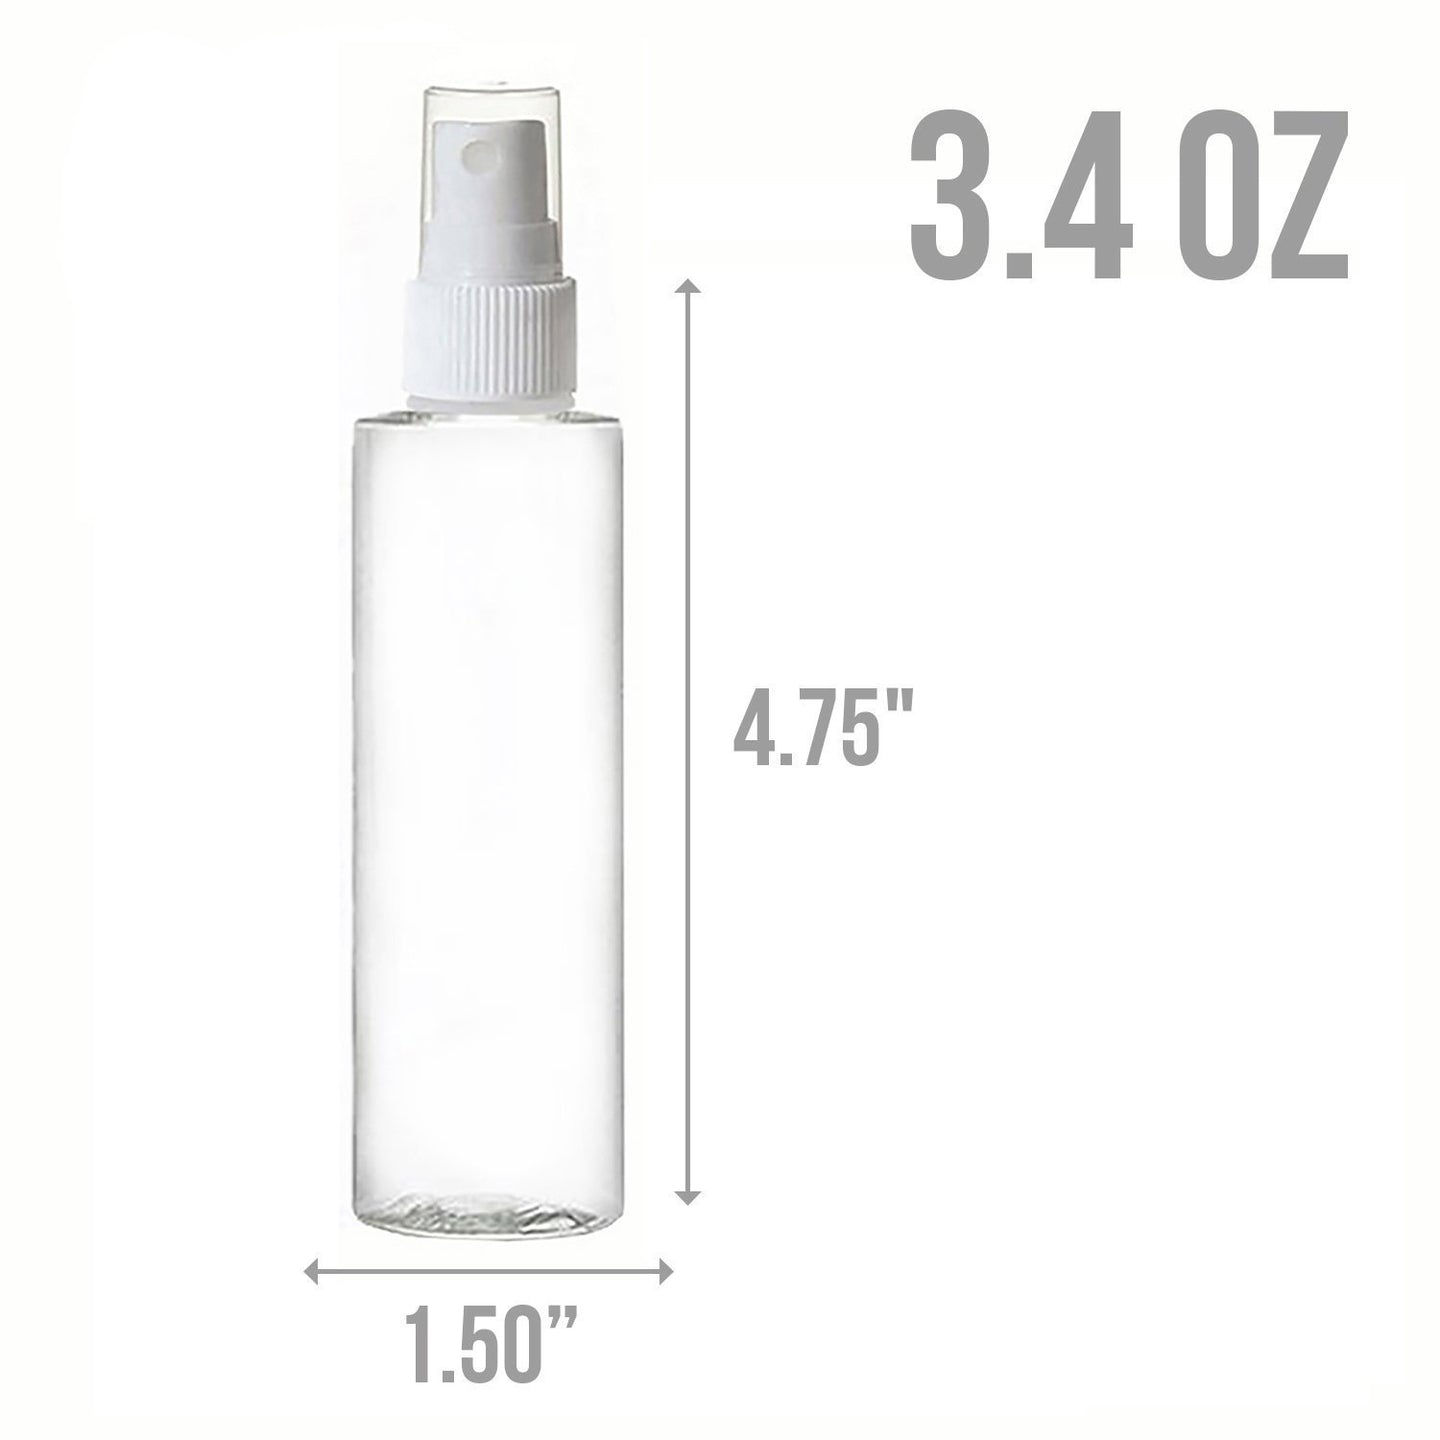 MoYo Natural Labs 3.4 oz Spray Bottles, TSA Approved Travel Bottles Fine Mist Pump Spray, Empty Travel Containers, BPA Free PET Plastic (Pack of 6)